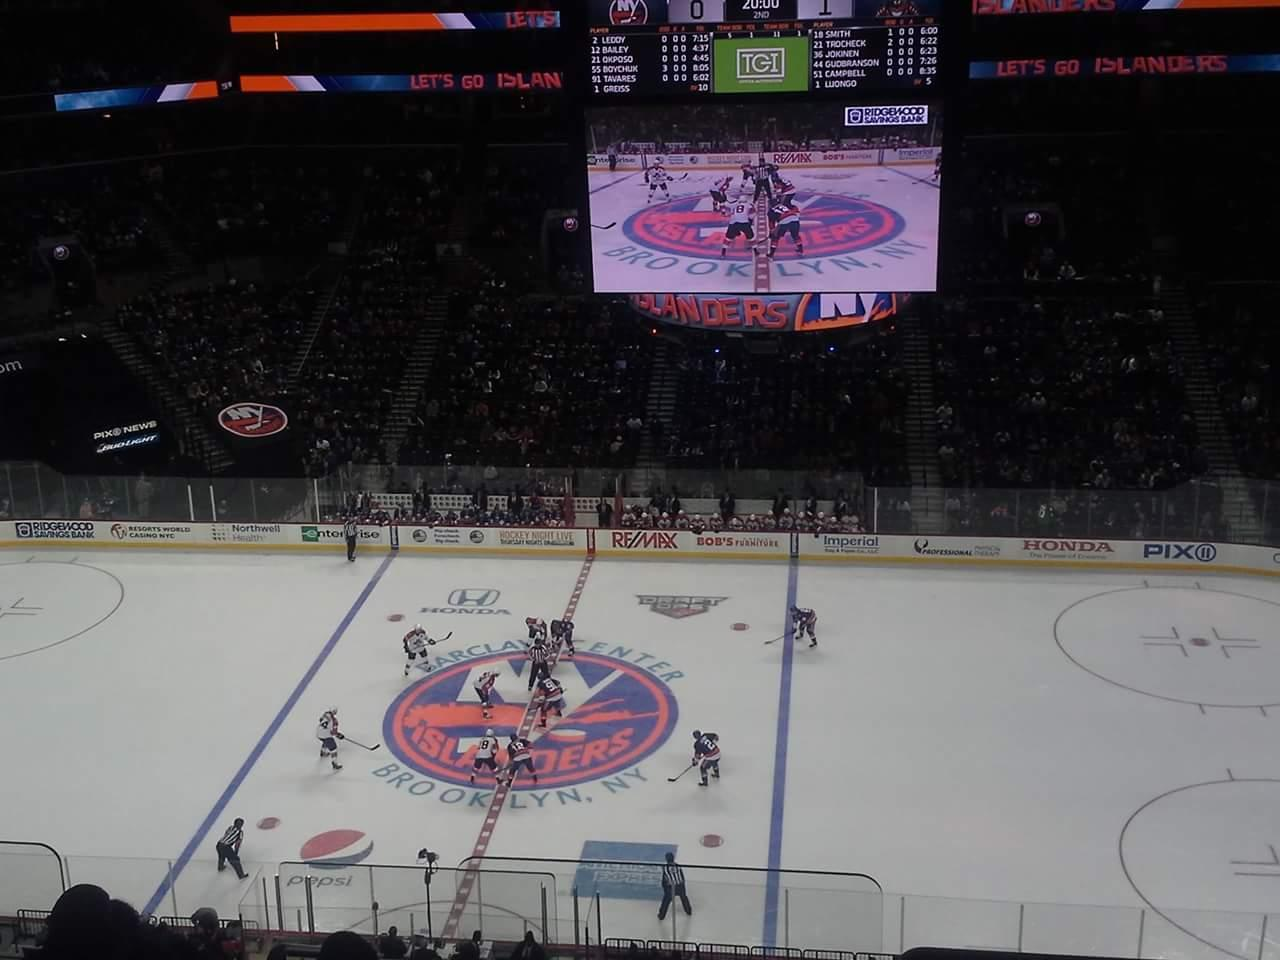 Barclays Center Section 223 Row 8 Seat 24